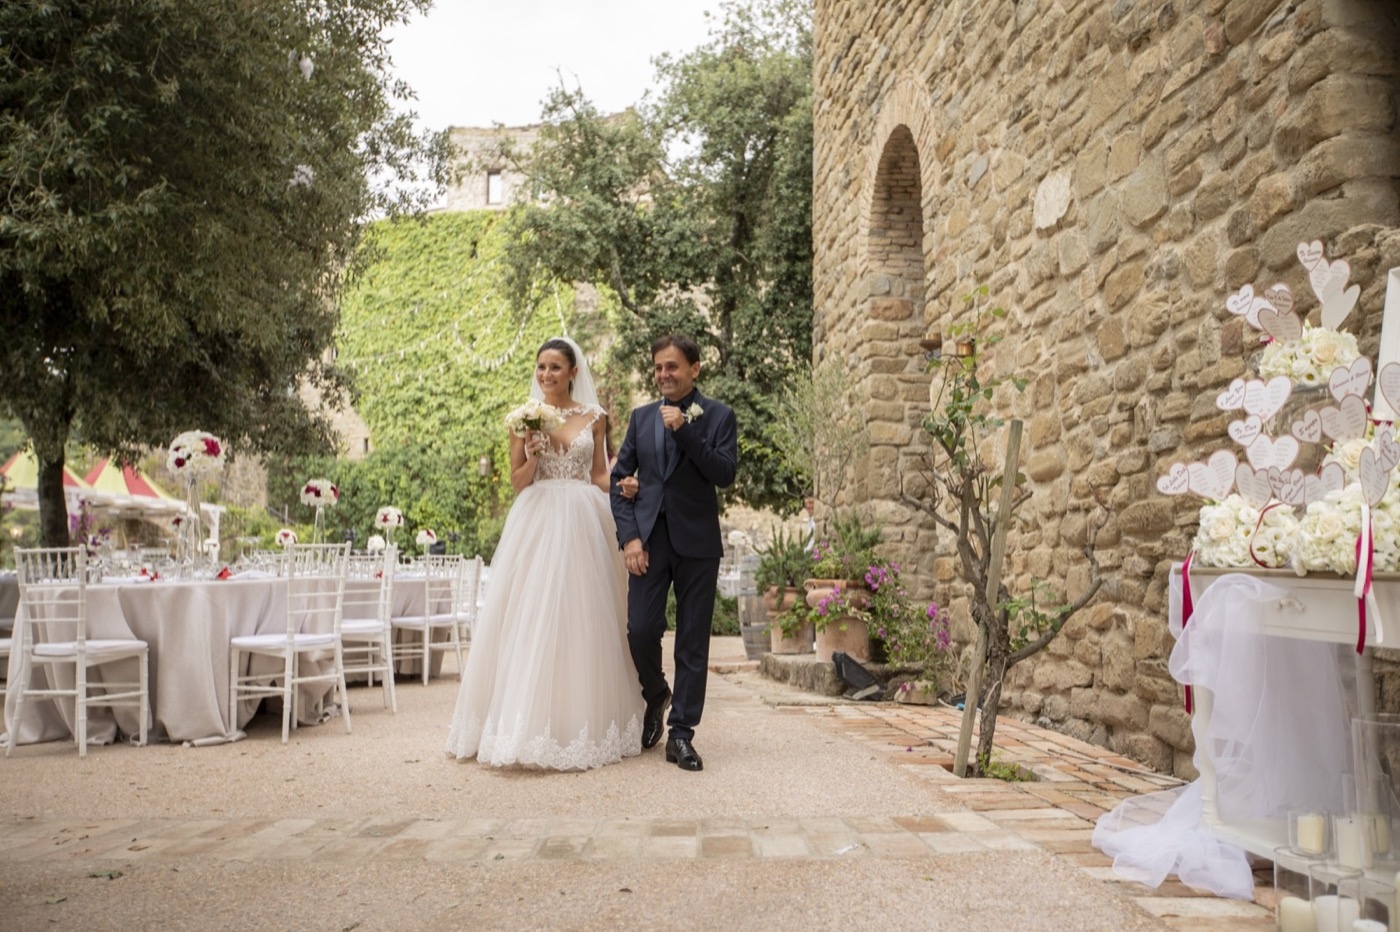 Claudio-Coppola-wedding-photographer-castello-rosciano-torgiano-31